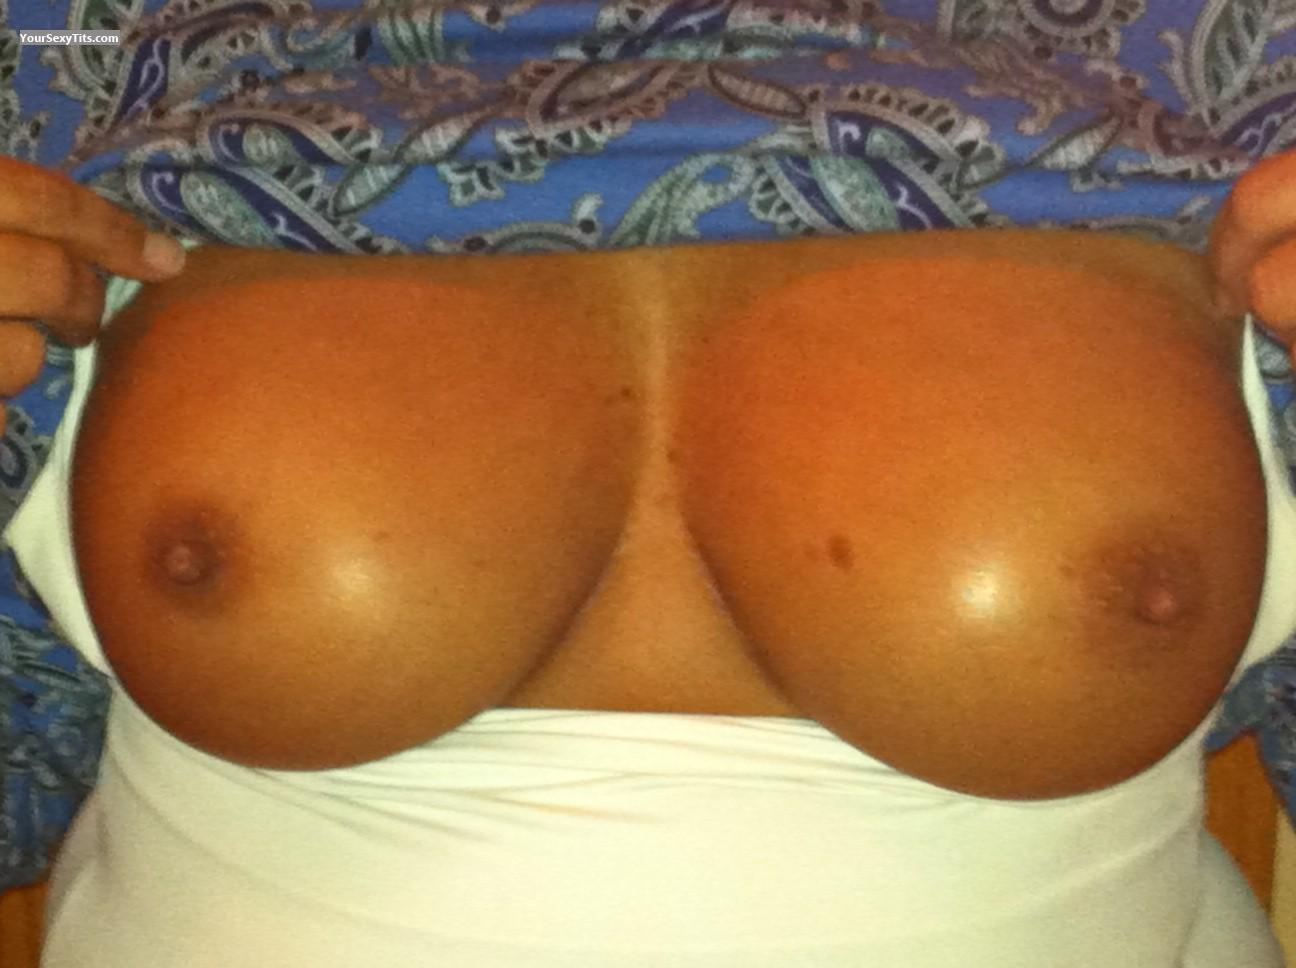 Tit Flash: Medium Tits - 55 Year Old MILF from United States